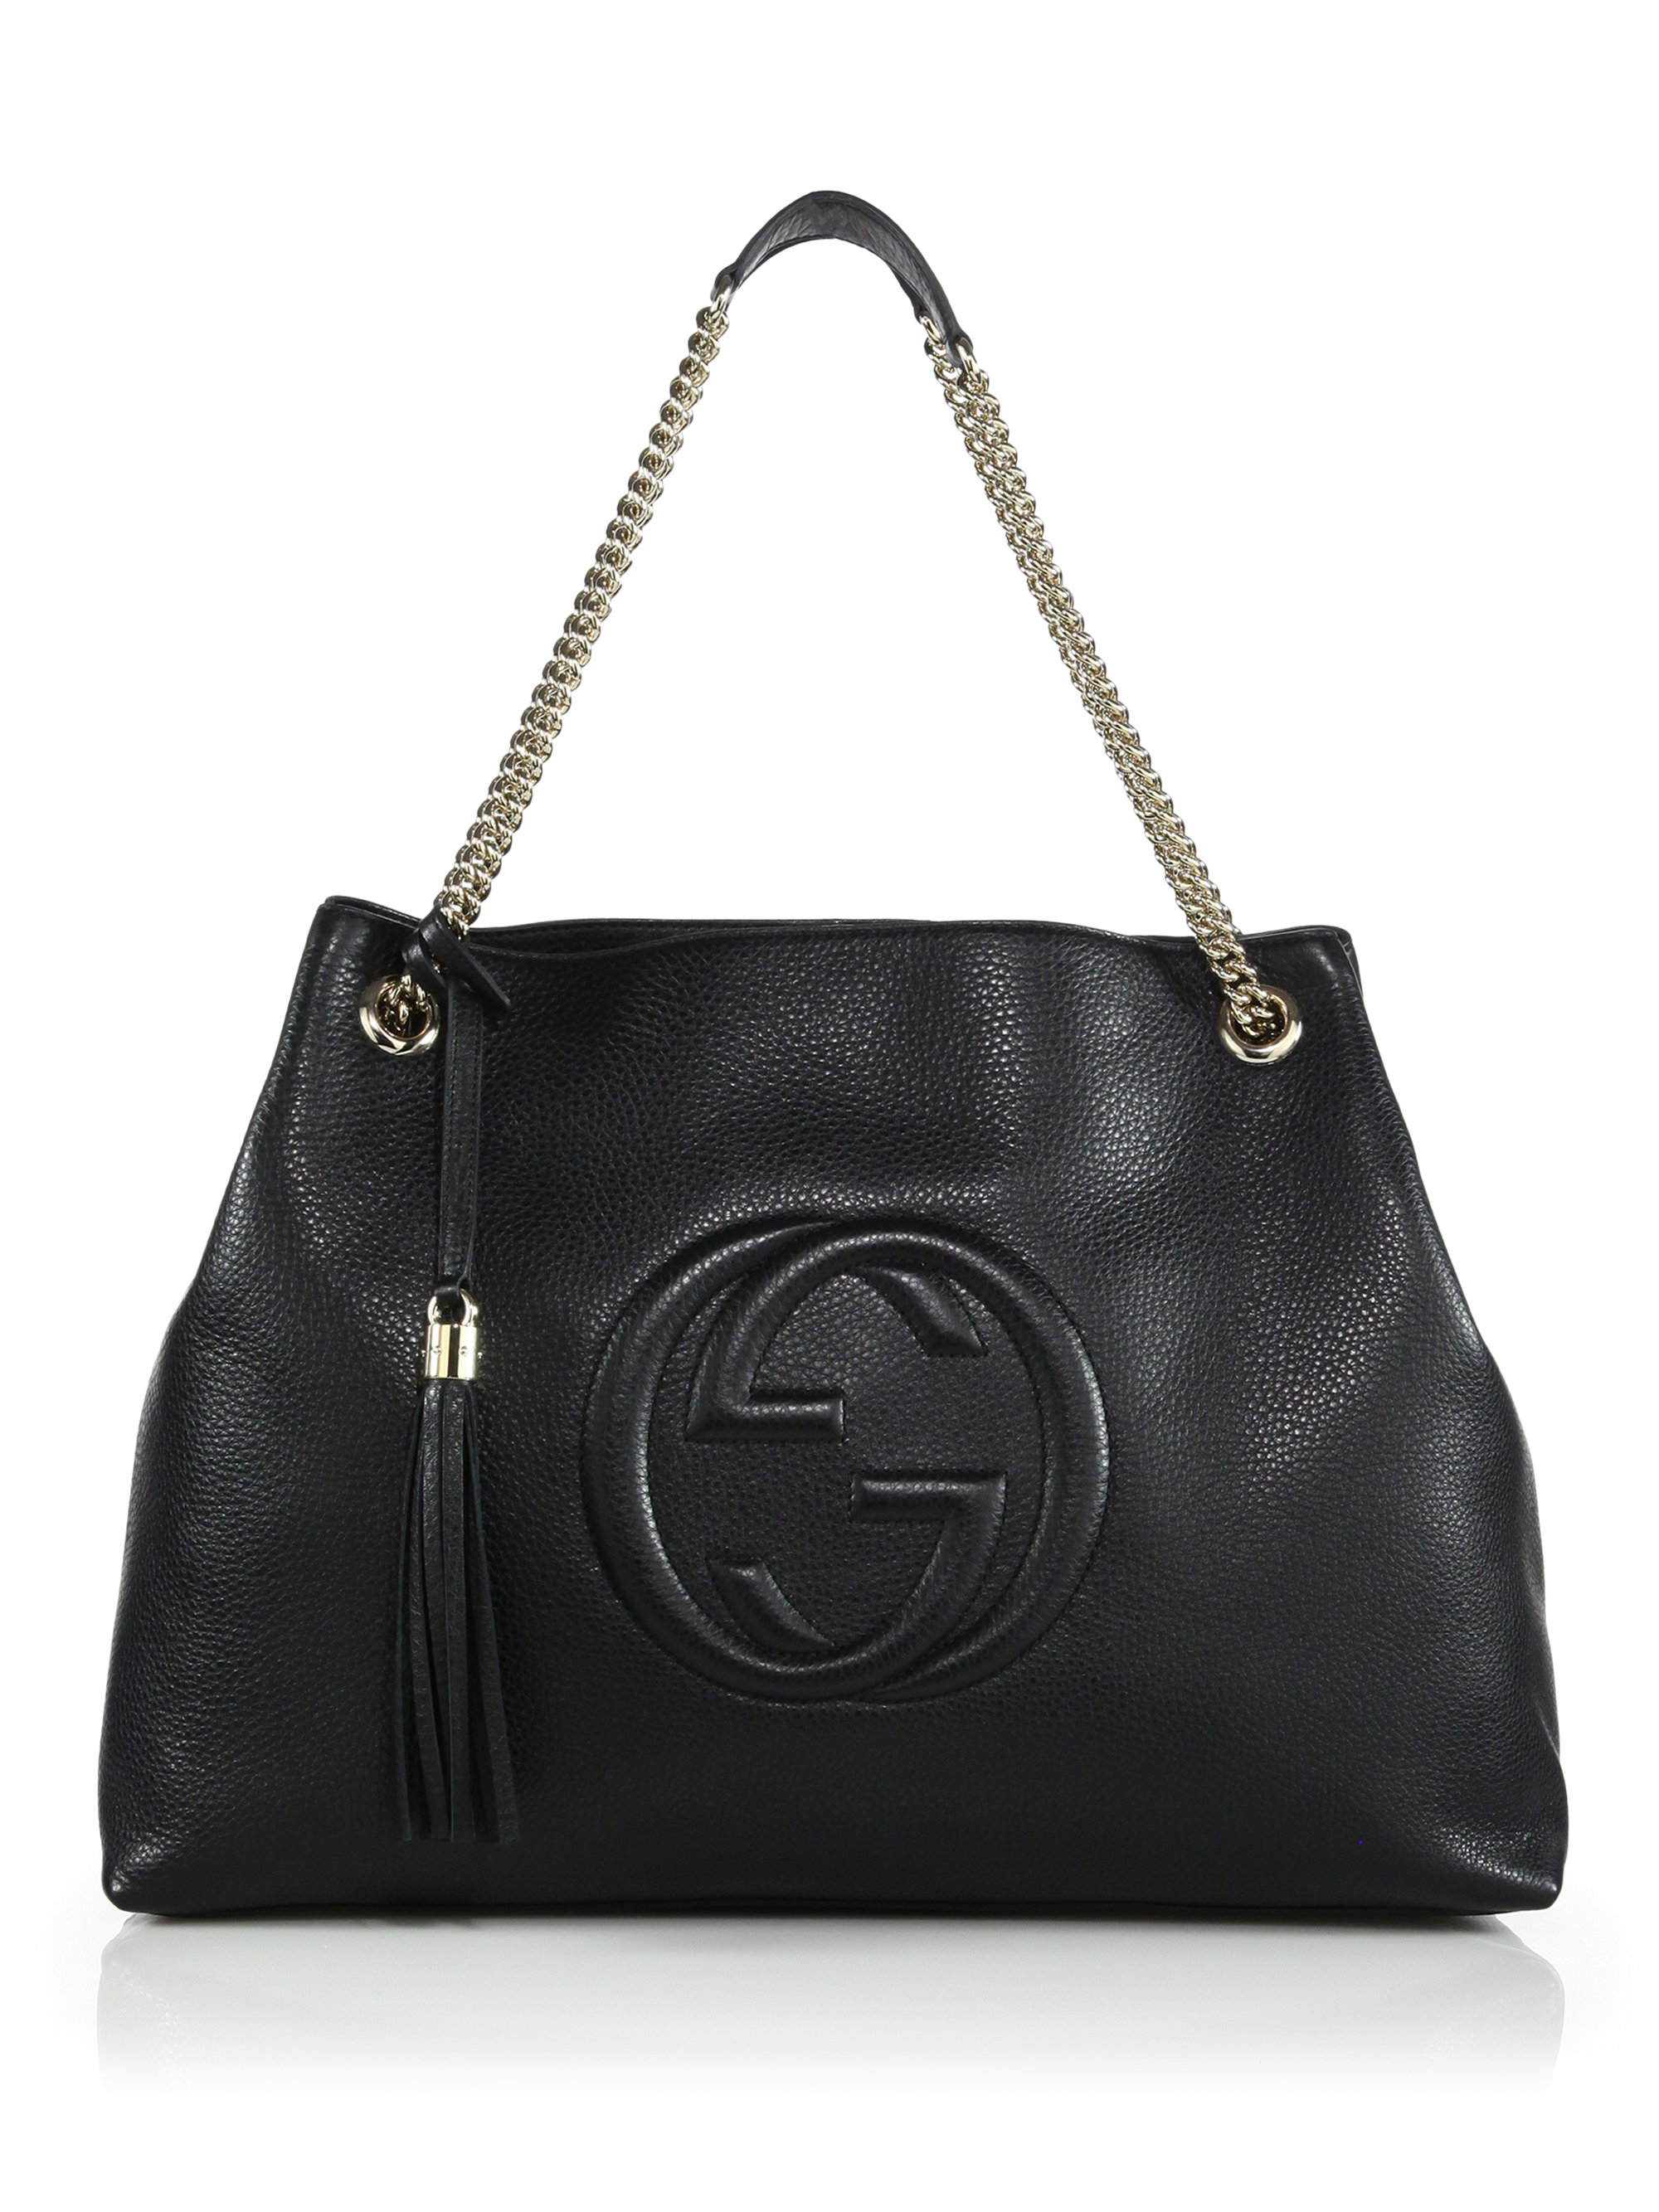 Lyst - Gucci Soho Leather Large Shoulder Bag in Black